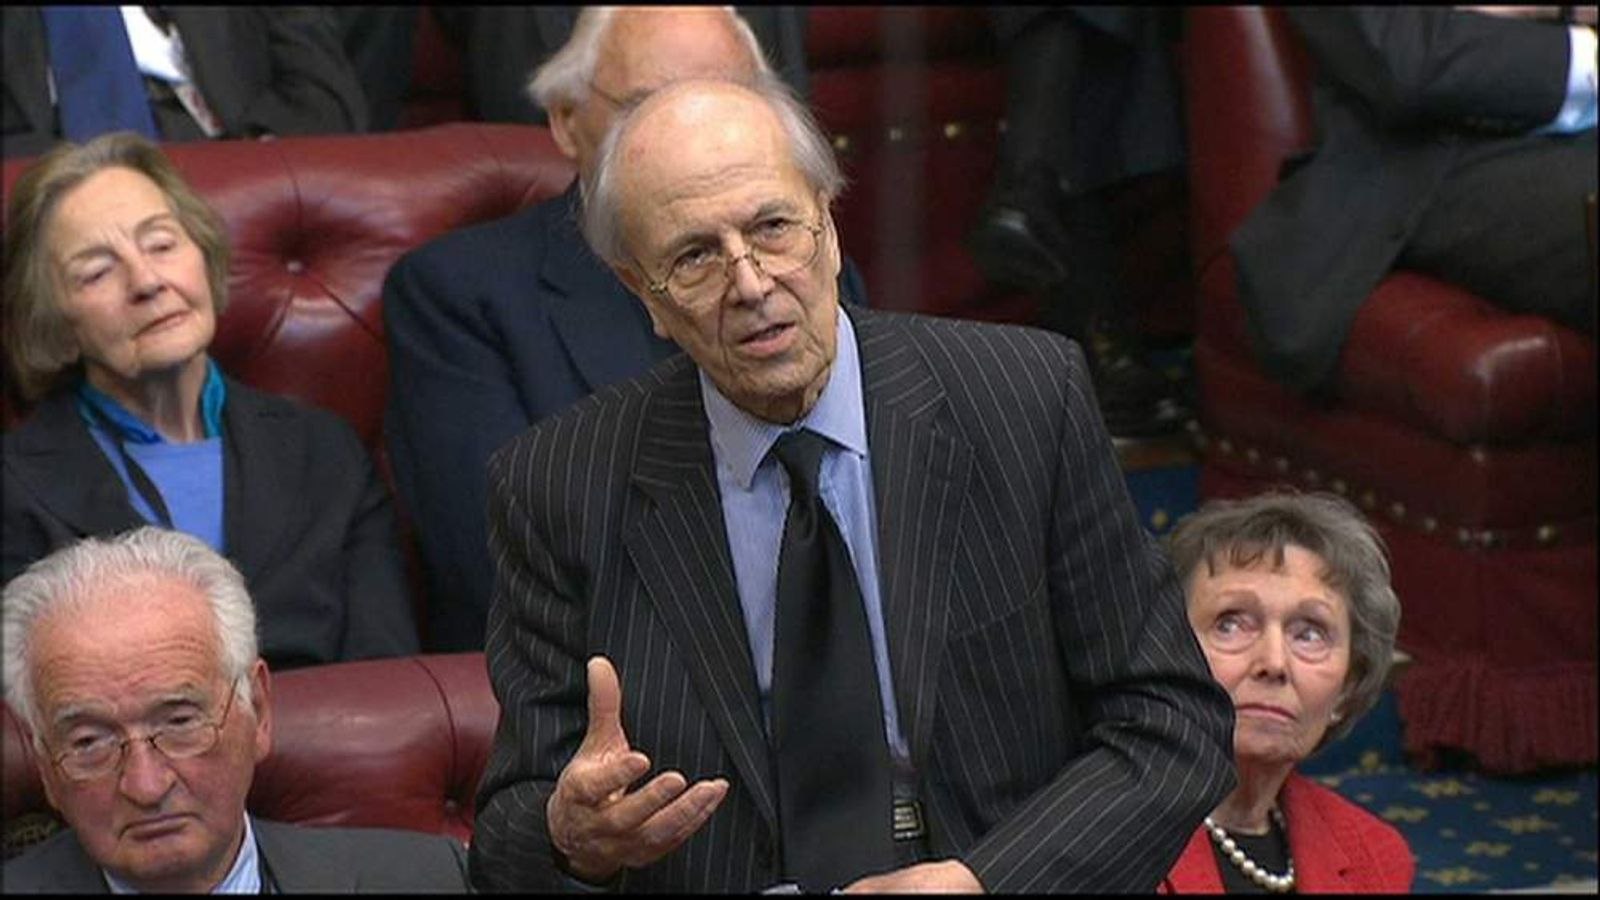 Lord Tebbit pays tribute to Lady Thatcher in the House of Lords